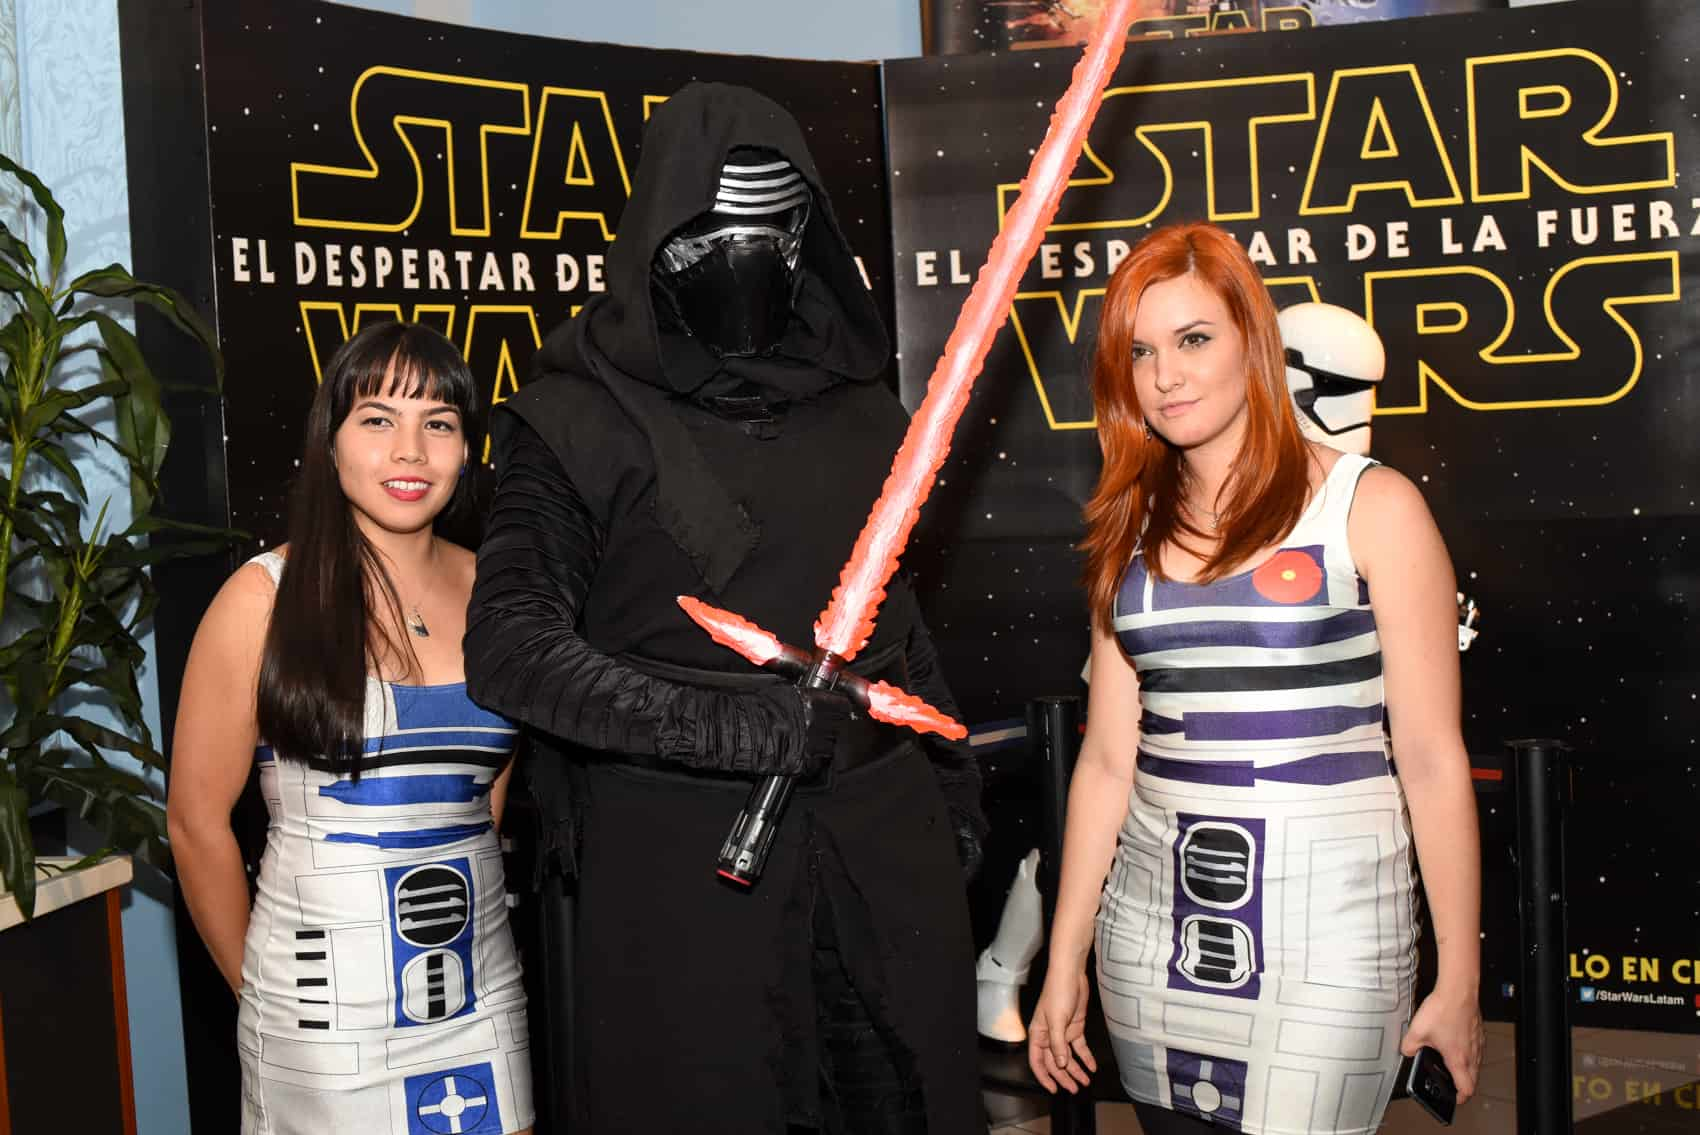 Fans pose with Kylo Ren